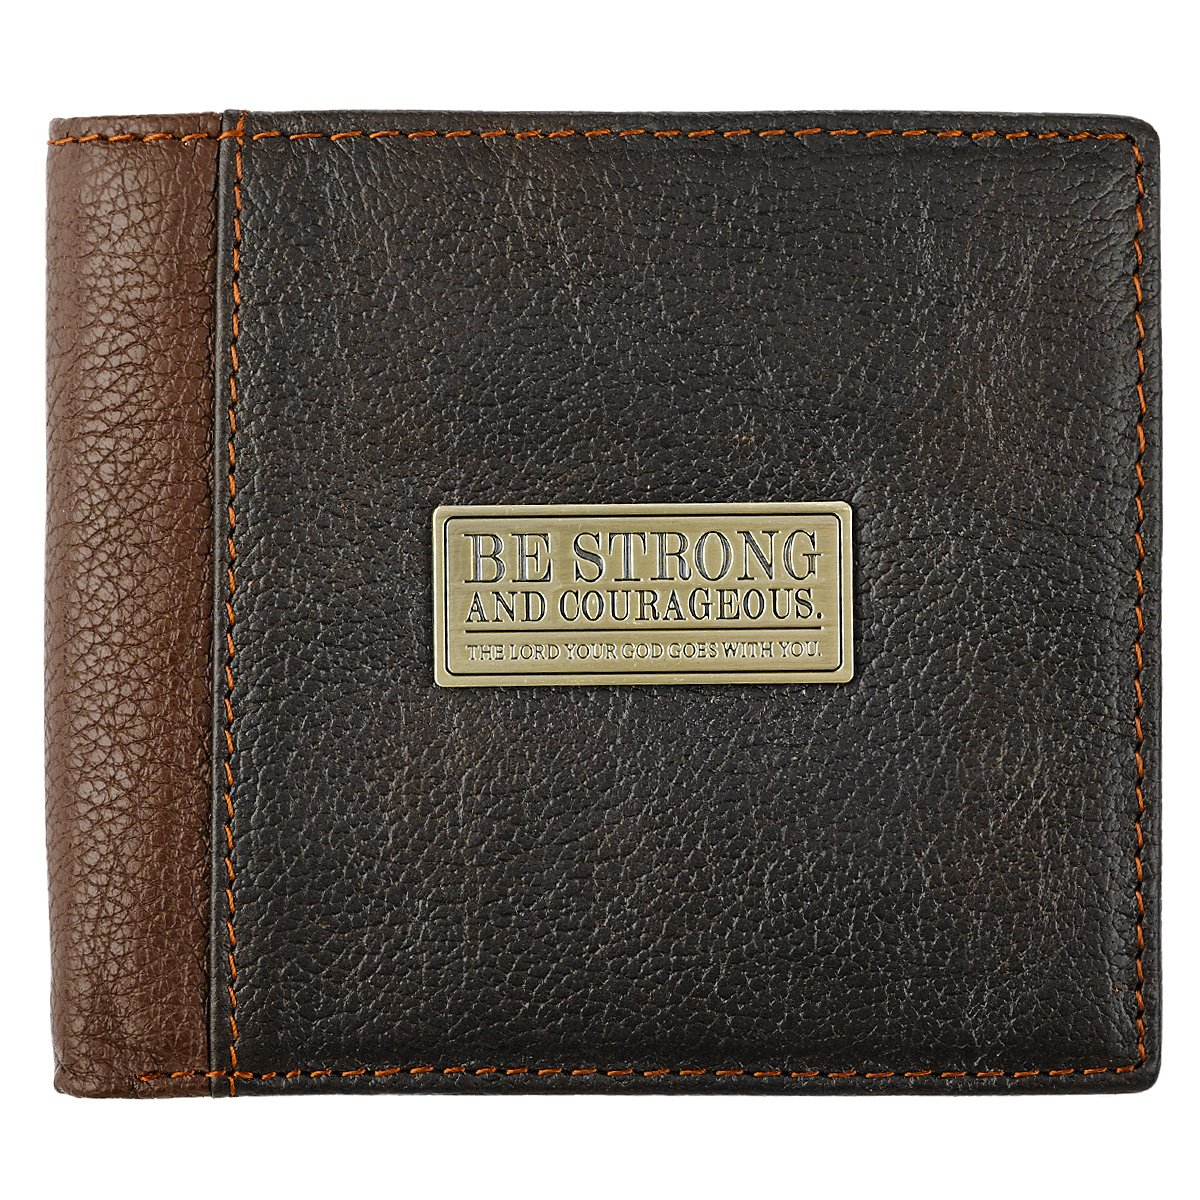 Two-Tone Genuine Leather Wallet w/''Be Strong and Courageous'' Badge